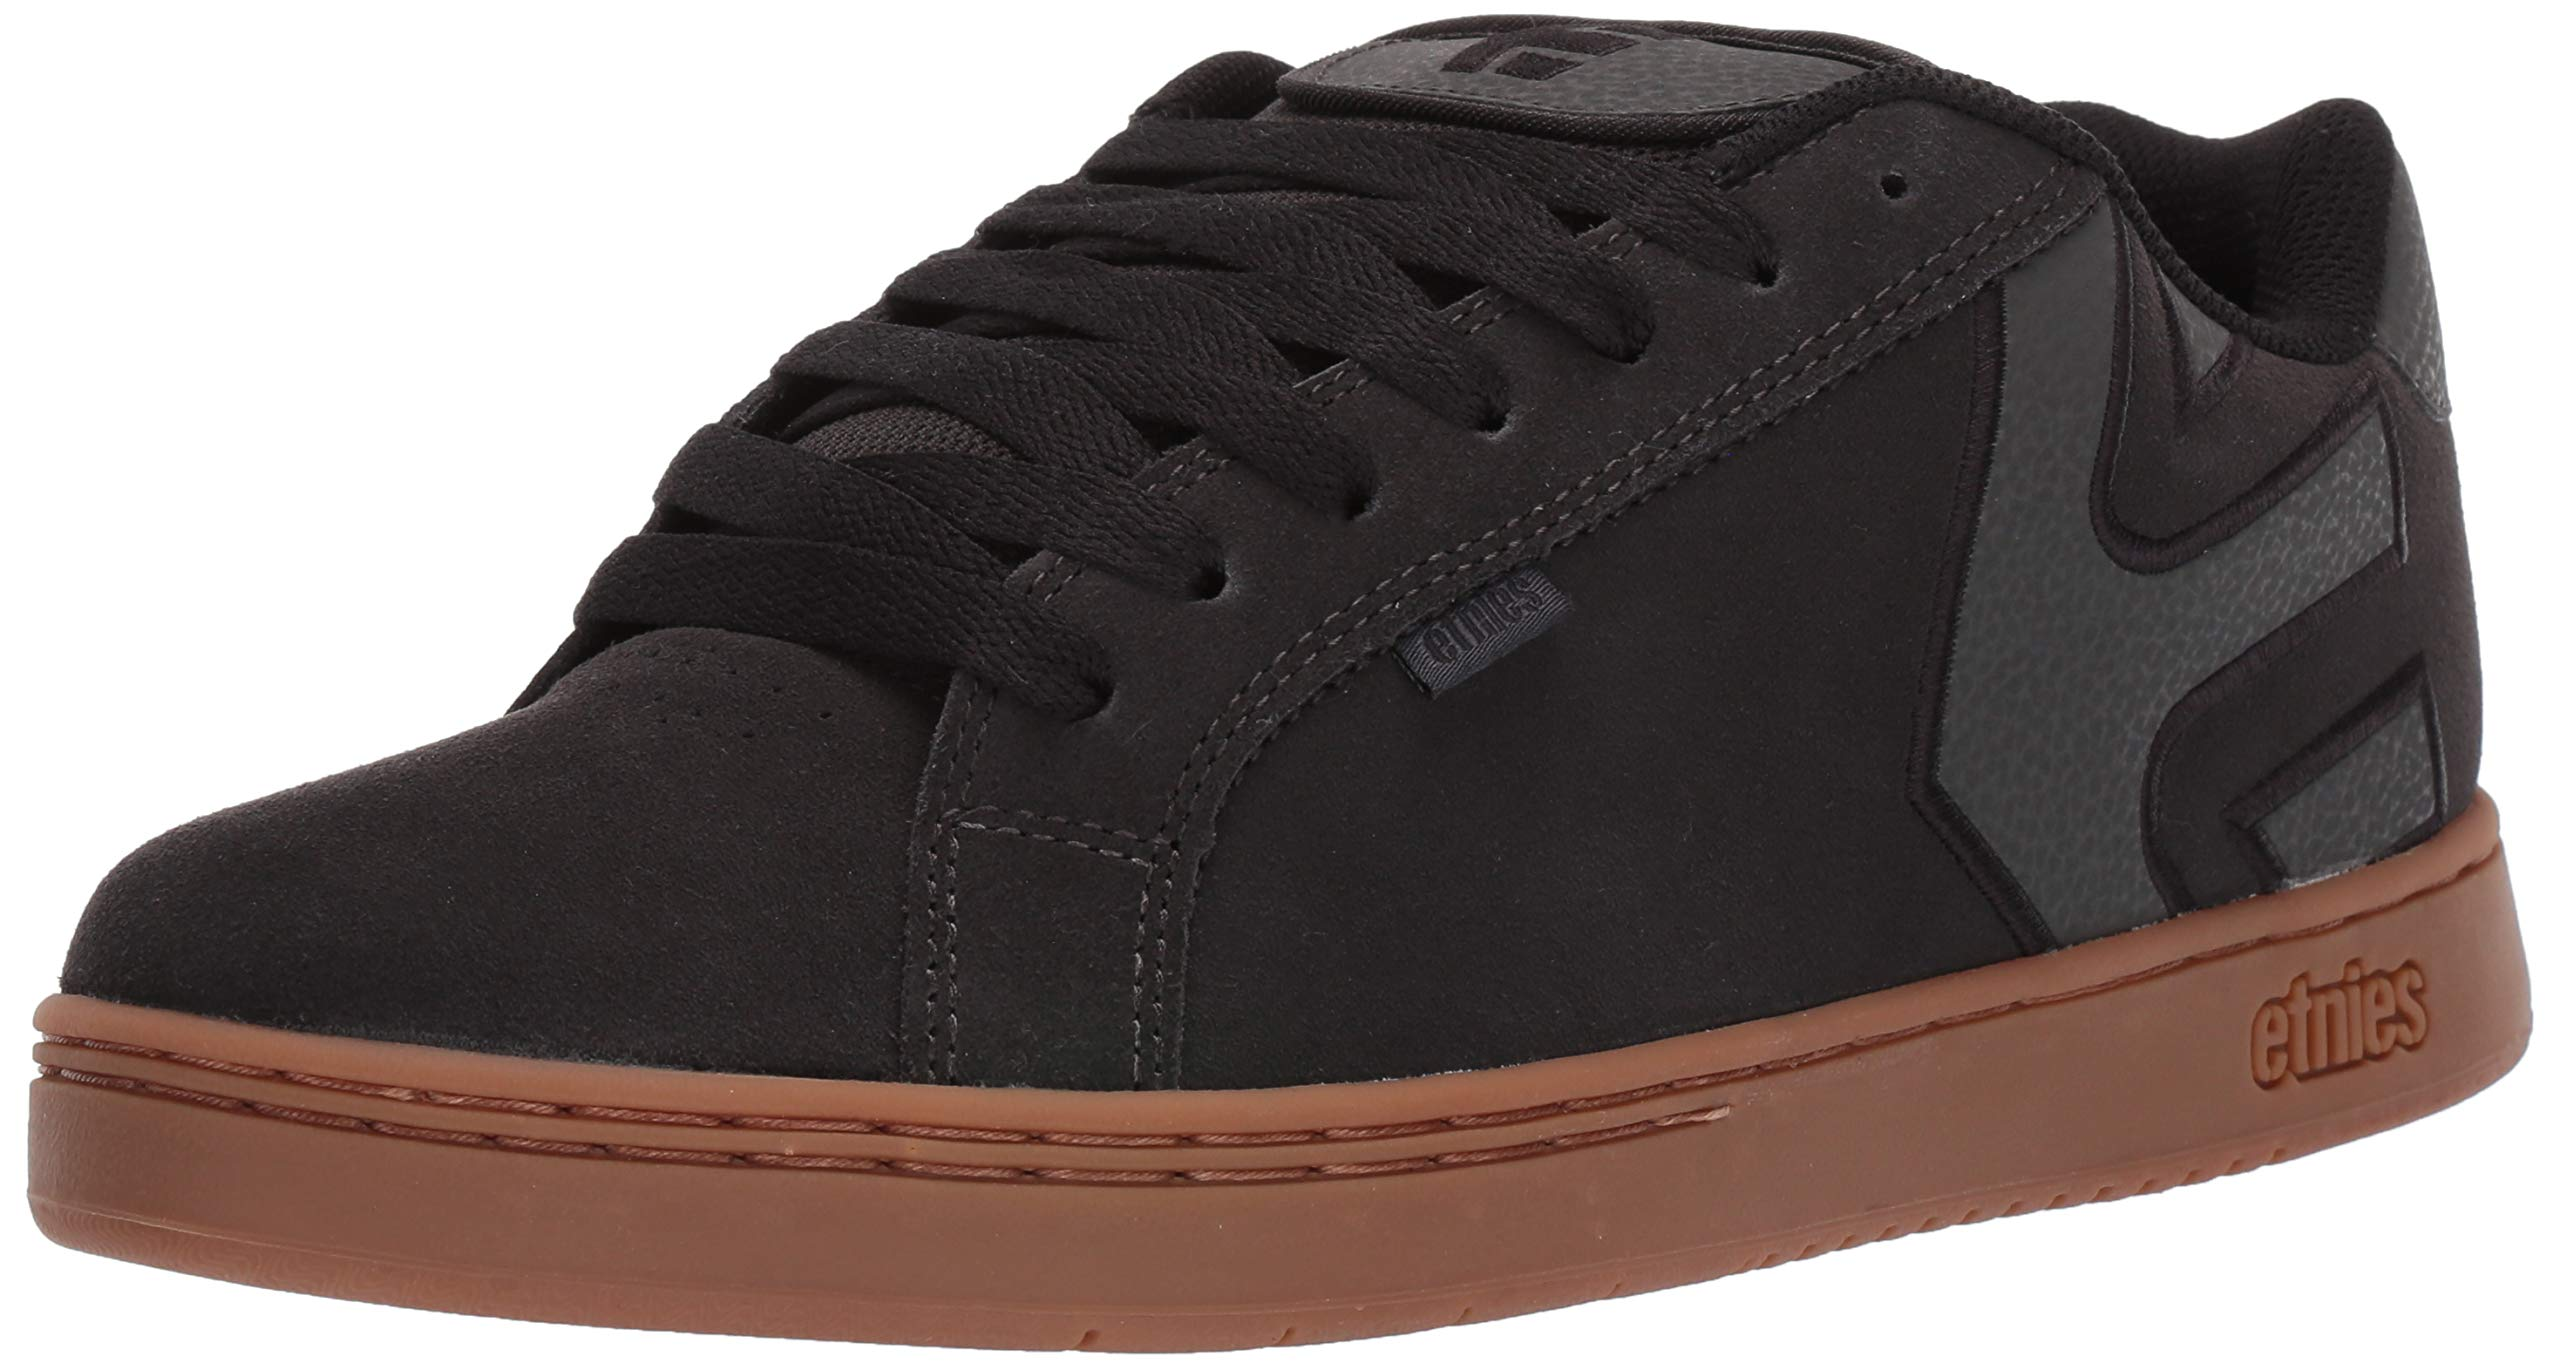 check out 47acd 8b792 Etnies Fader, Chaussures de skateboard homme